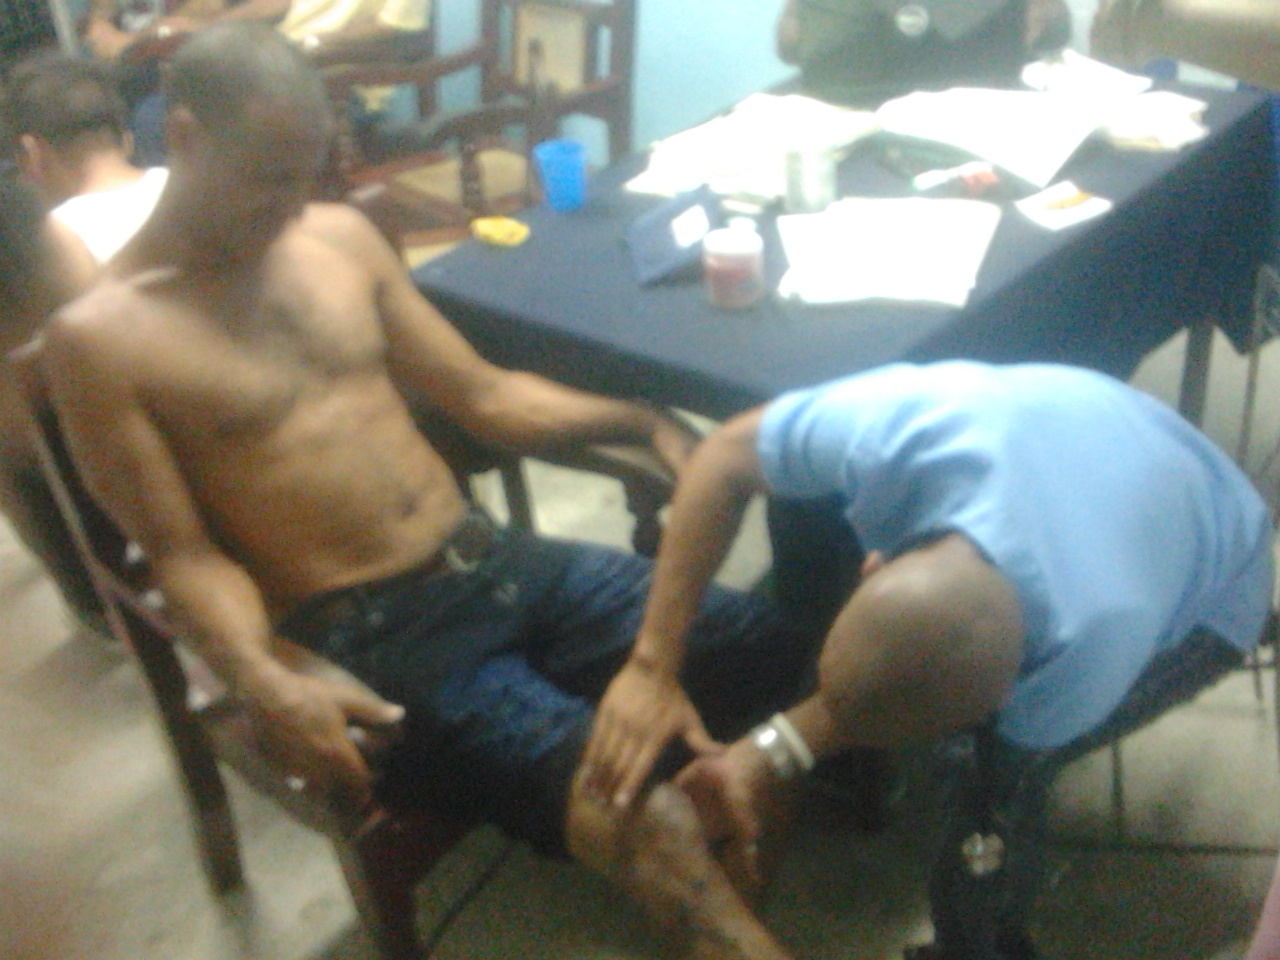 A doctor attends to Roberto Formigo, a UNPACU activist, after being assaulted by police.